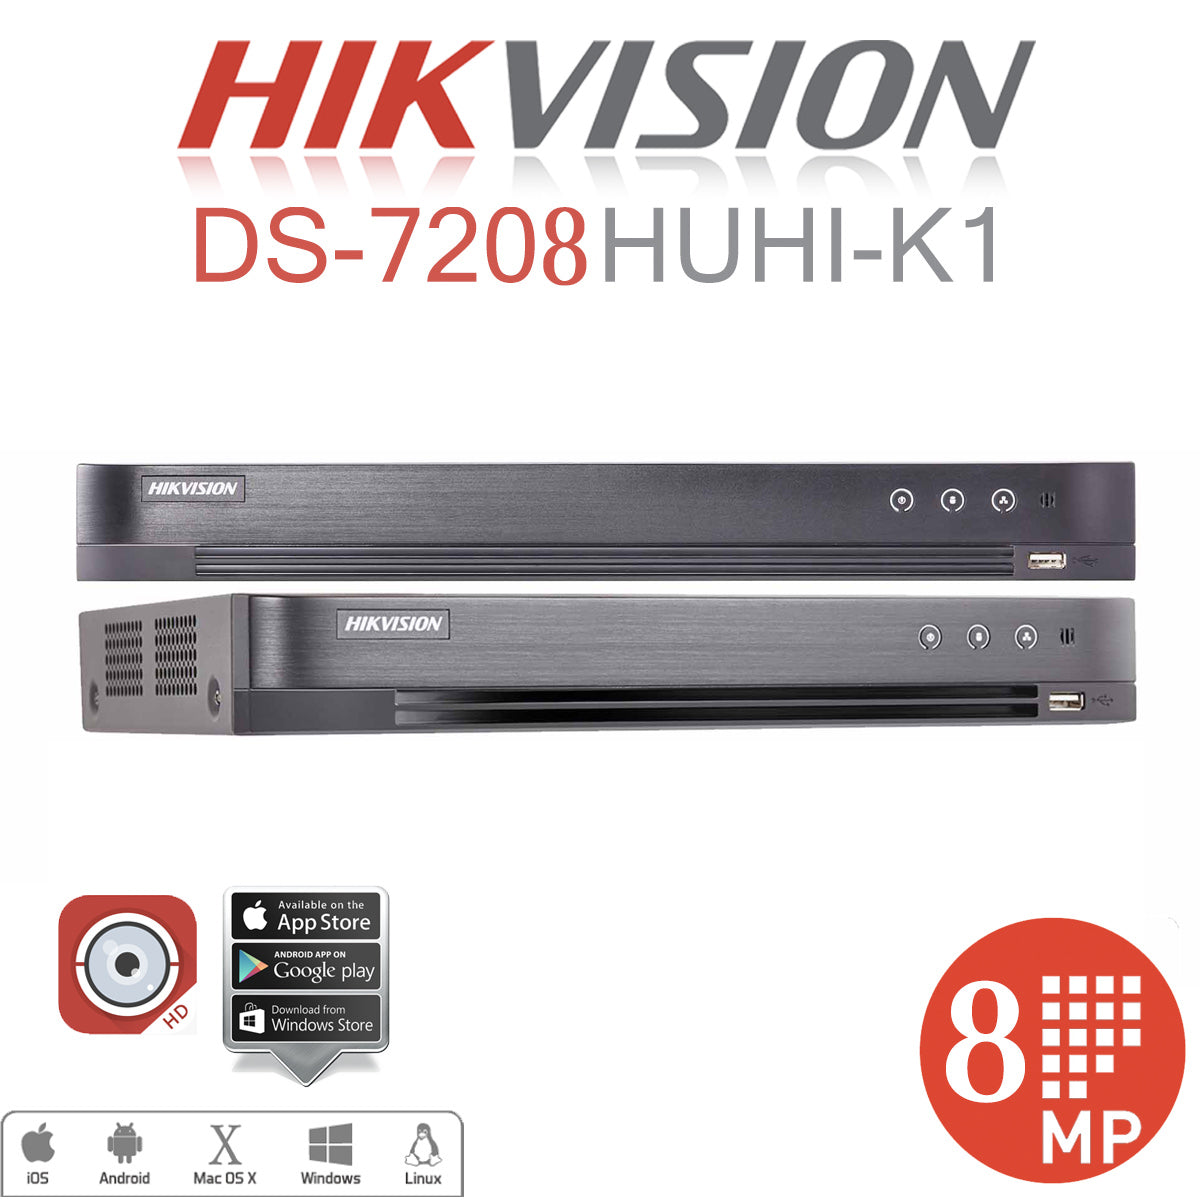 8CH Hikvision DS-7208HUHI-K1 DVR with 2TB Hard Drive | Touch